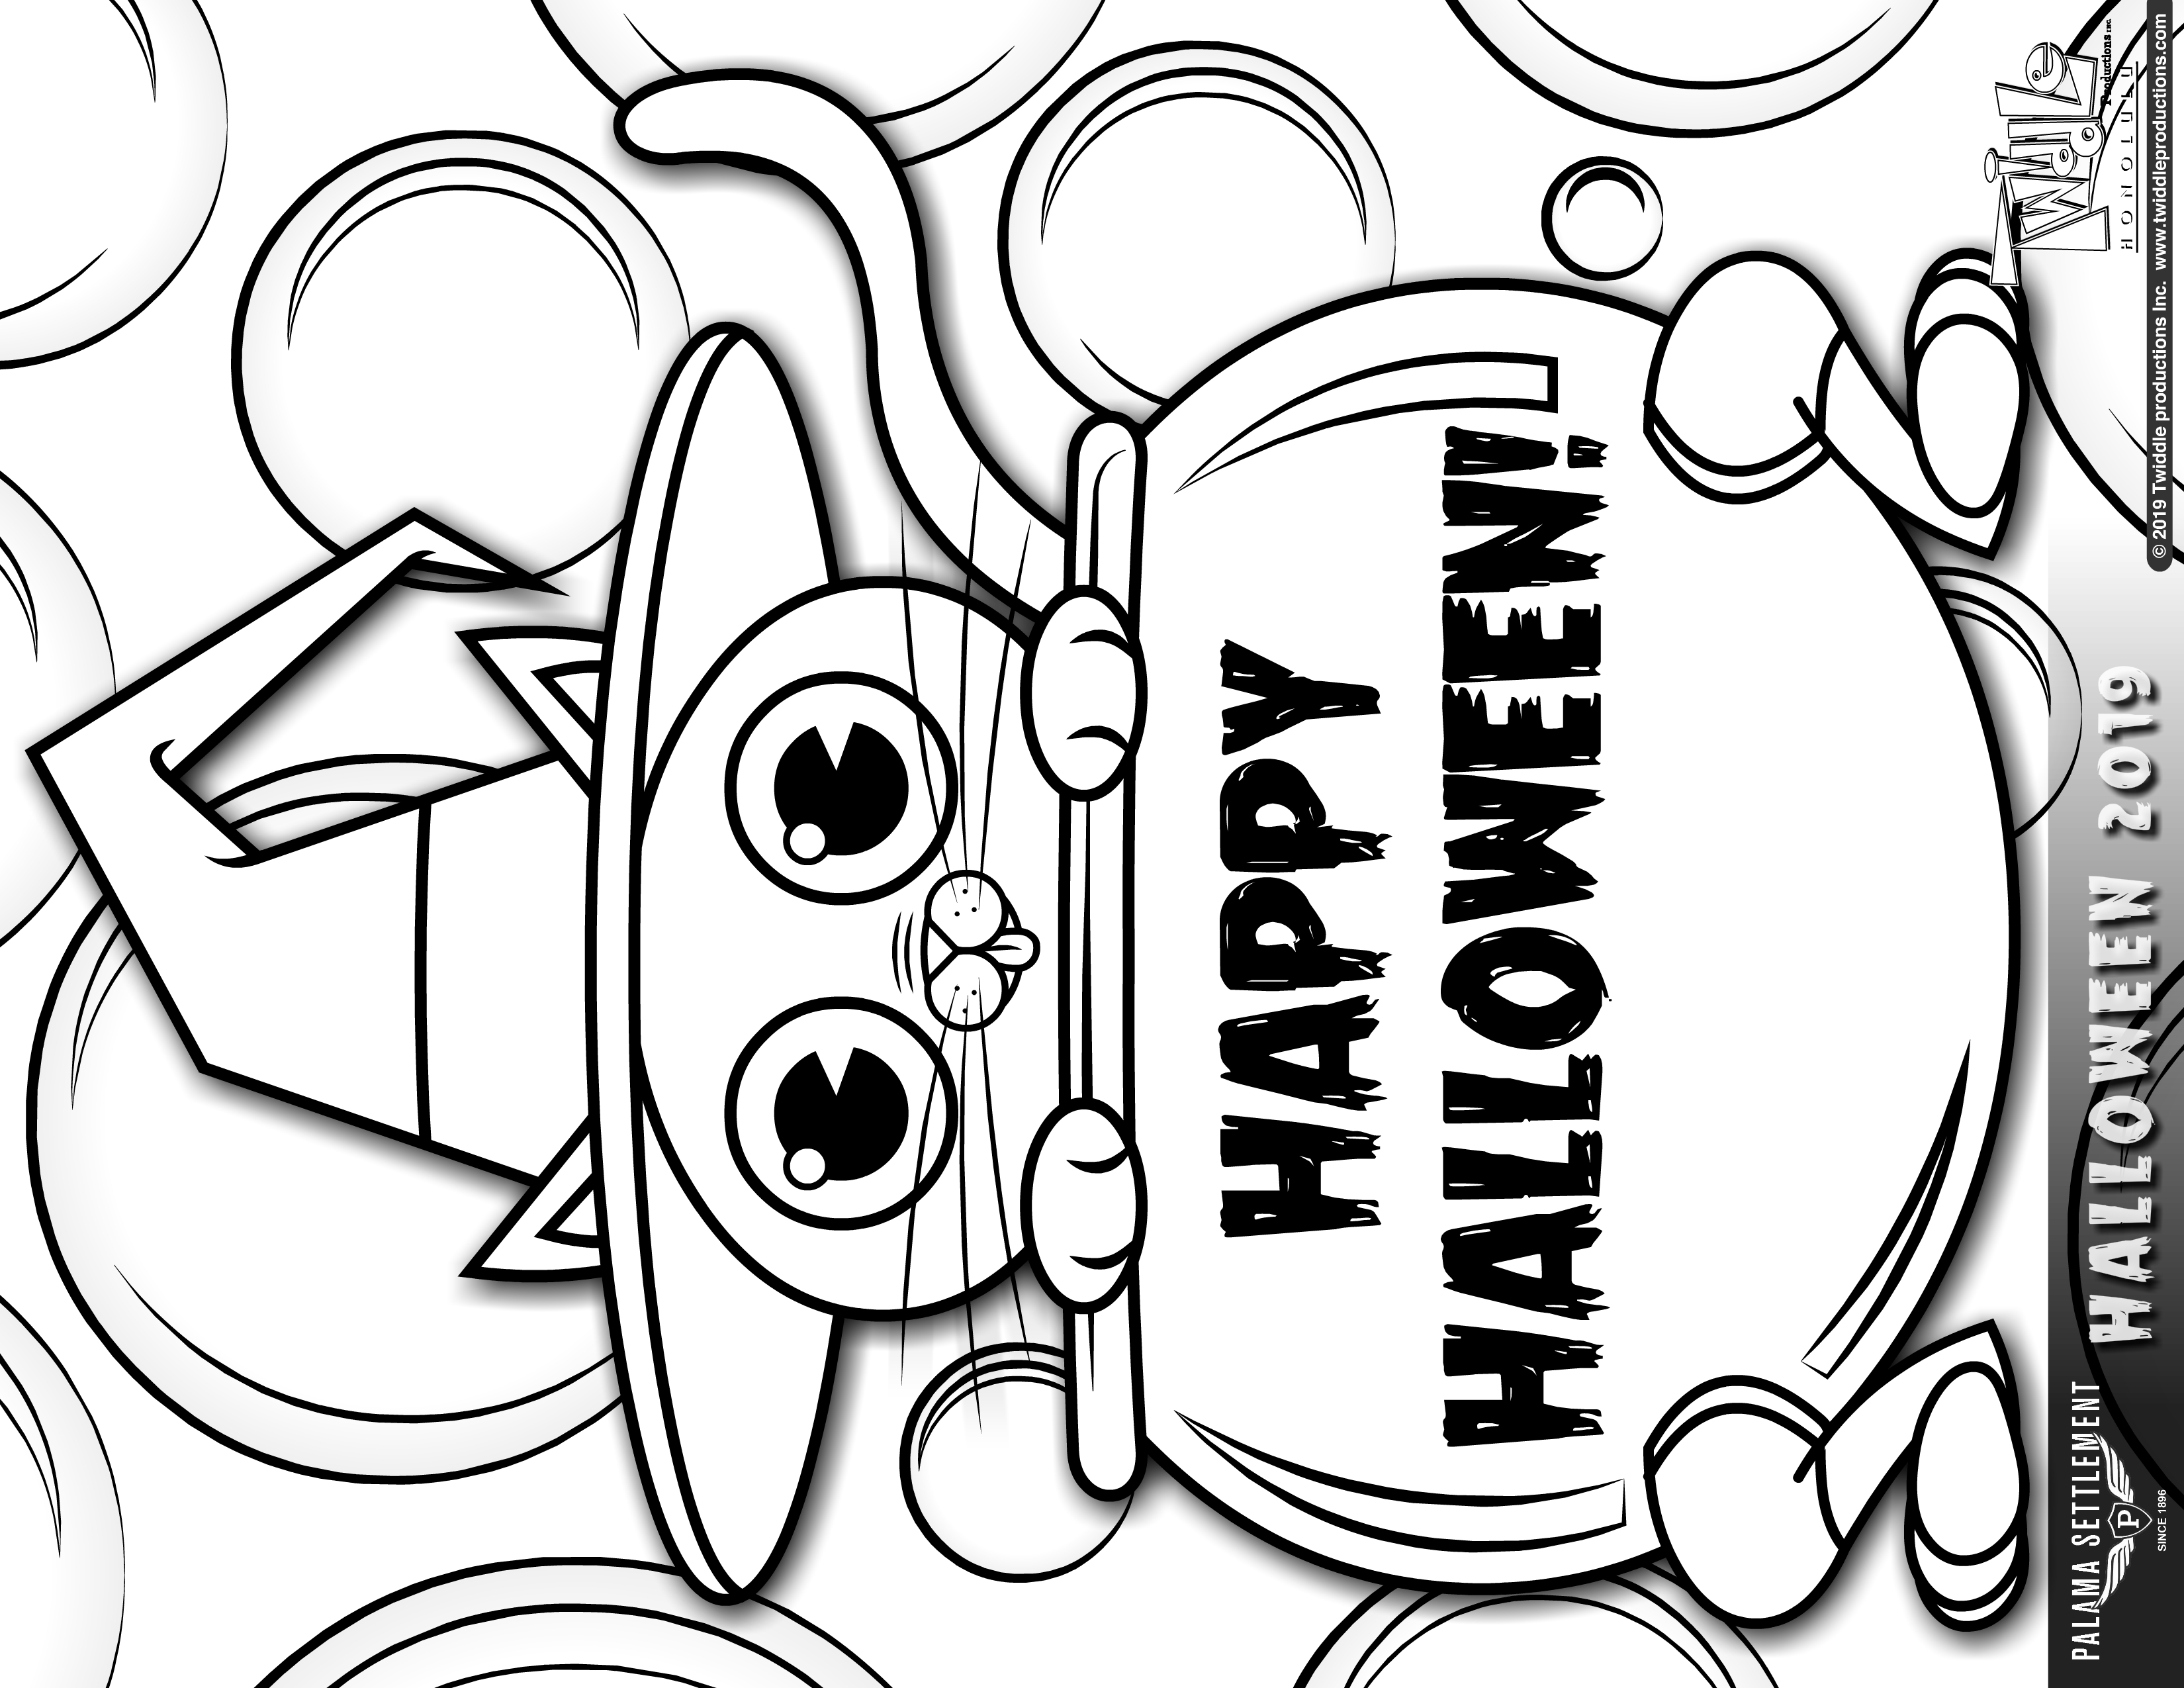 coloring halloween card halloween printable coloring note card digital download pdf coloring halloween card